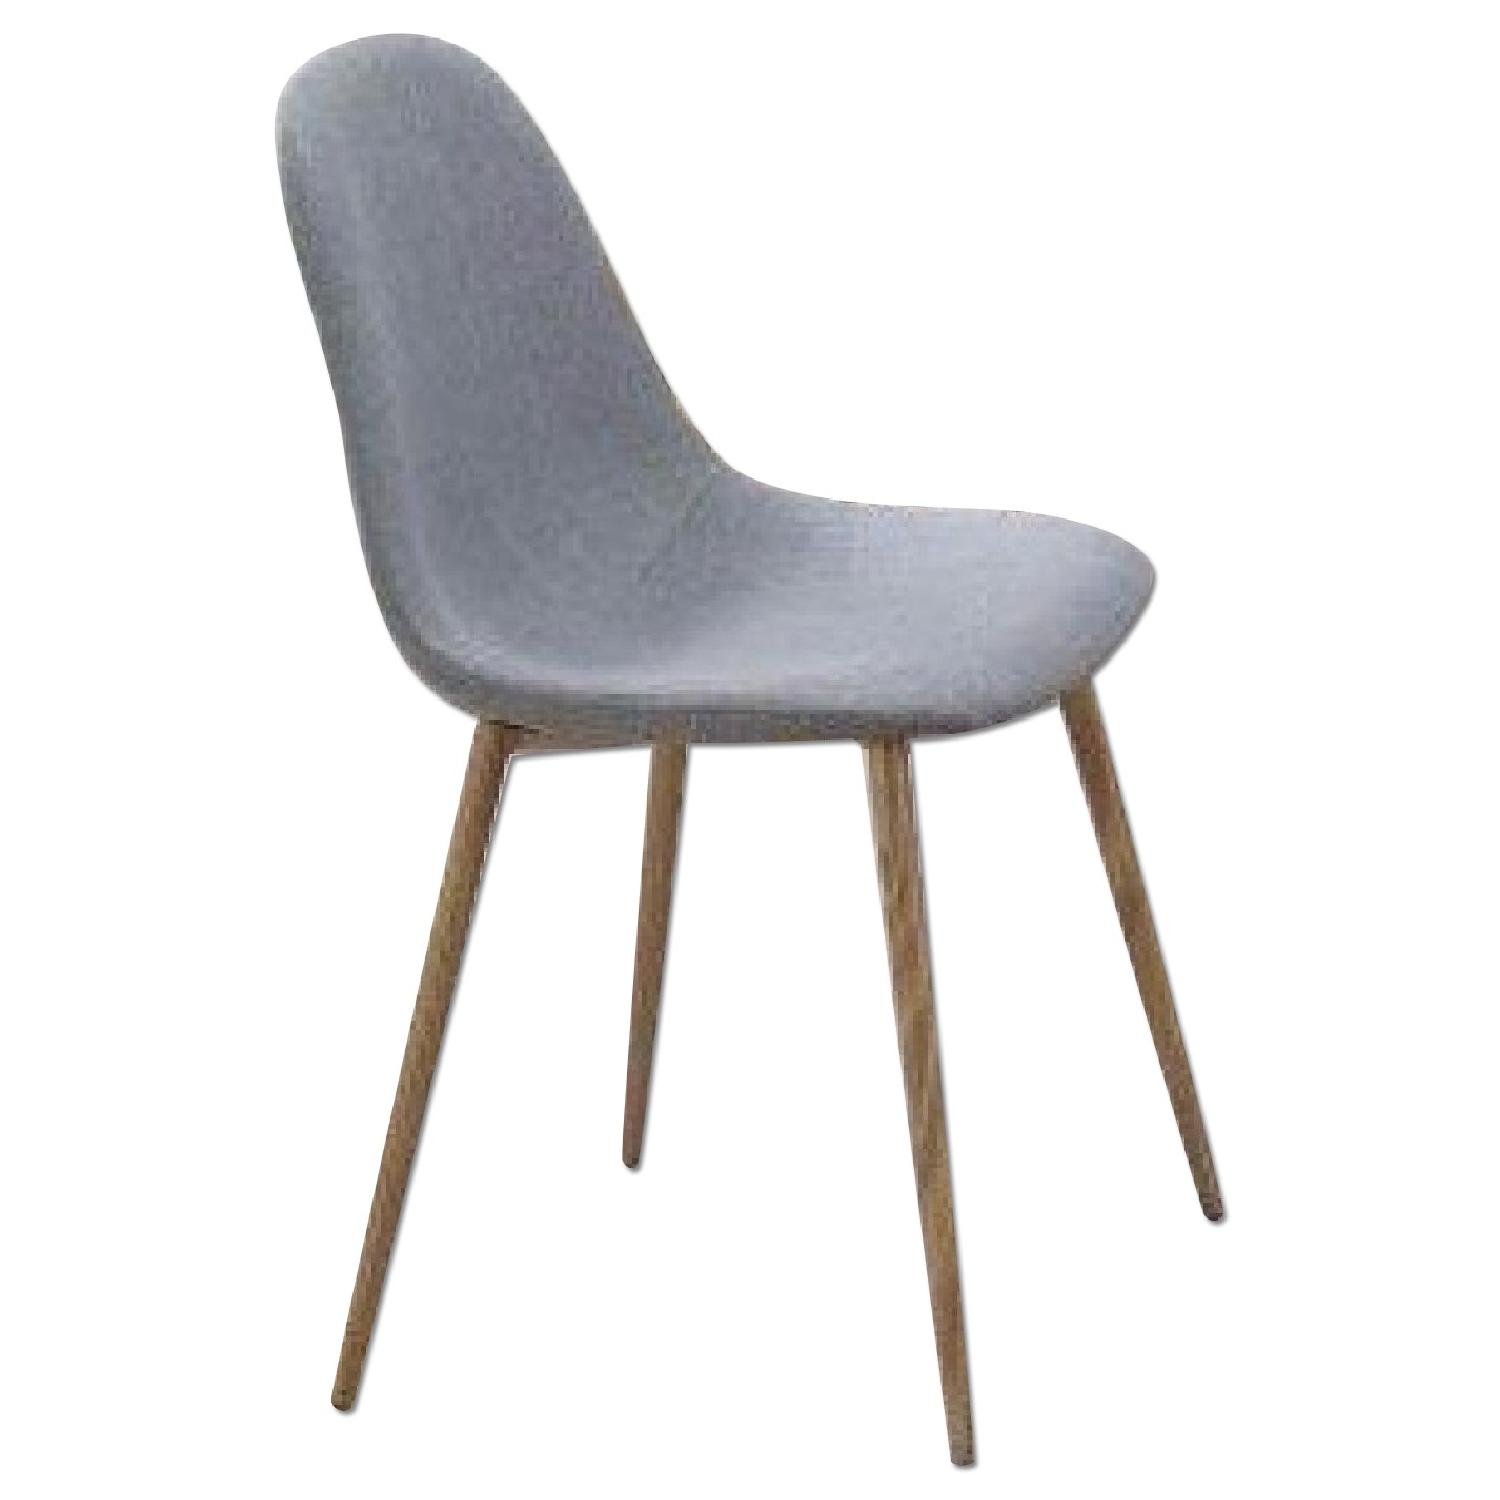 Dining Chair Upholstered in Grey Woven Fabric